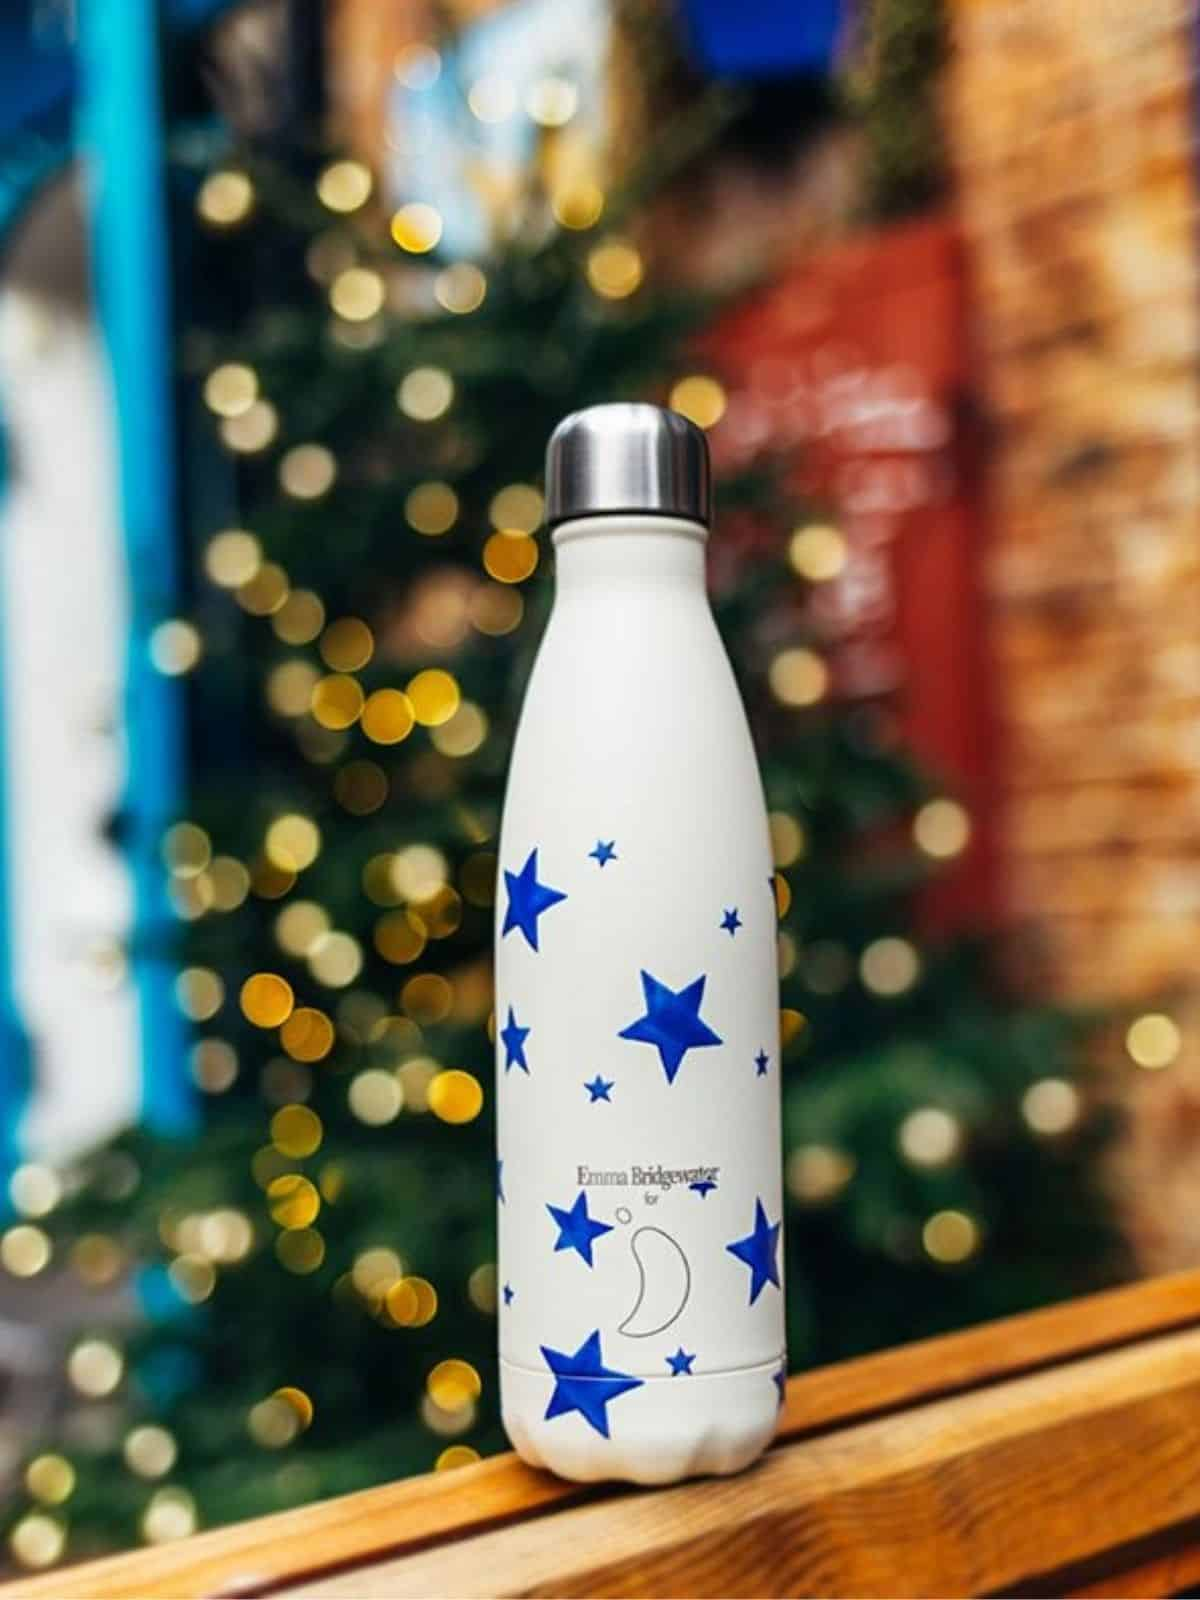 white reusable water bottle recorated with blue stars on a wooden ledge with christmas tree in background